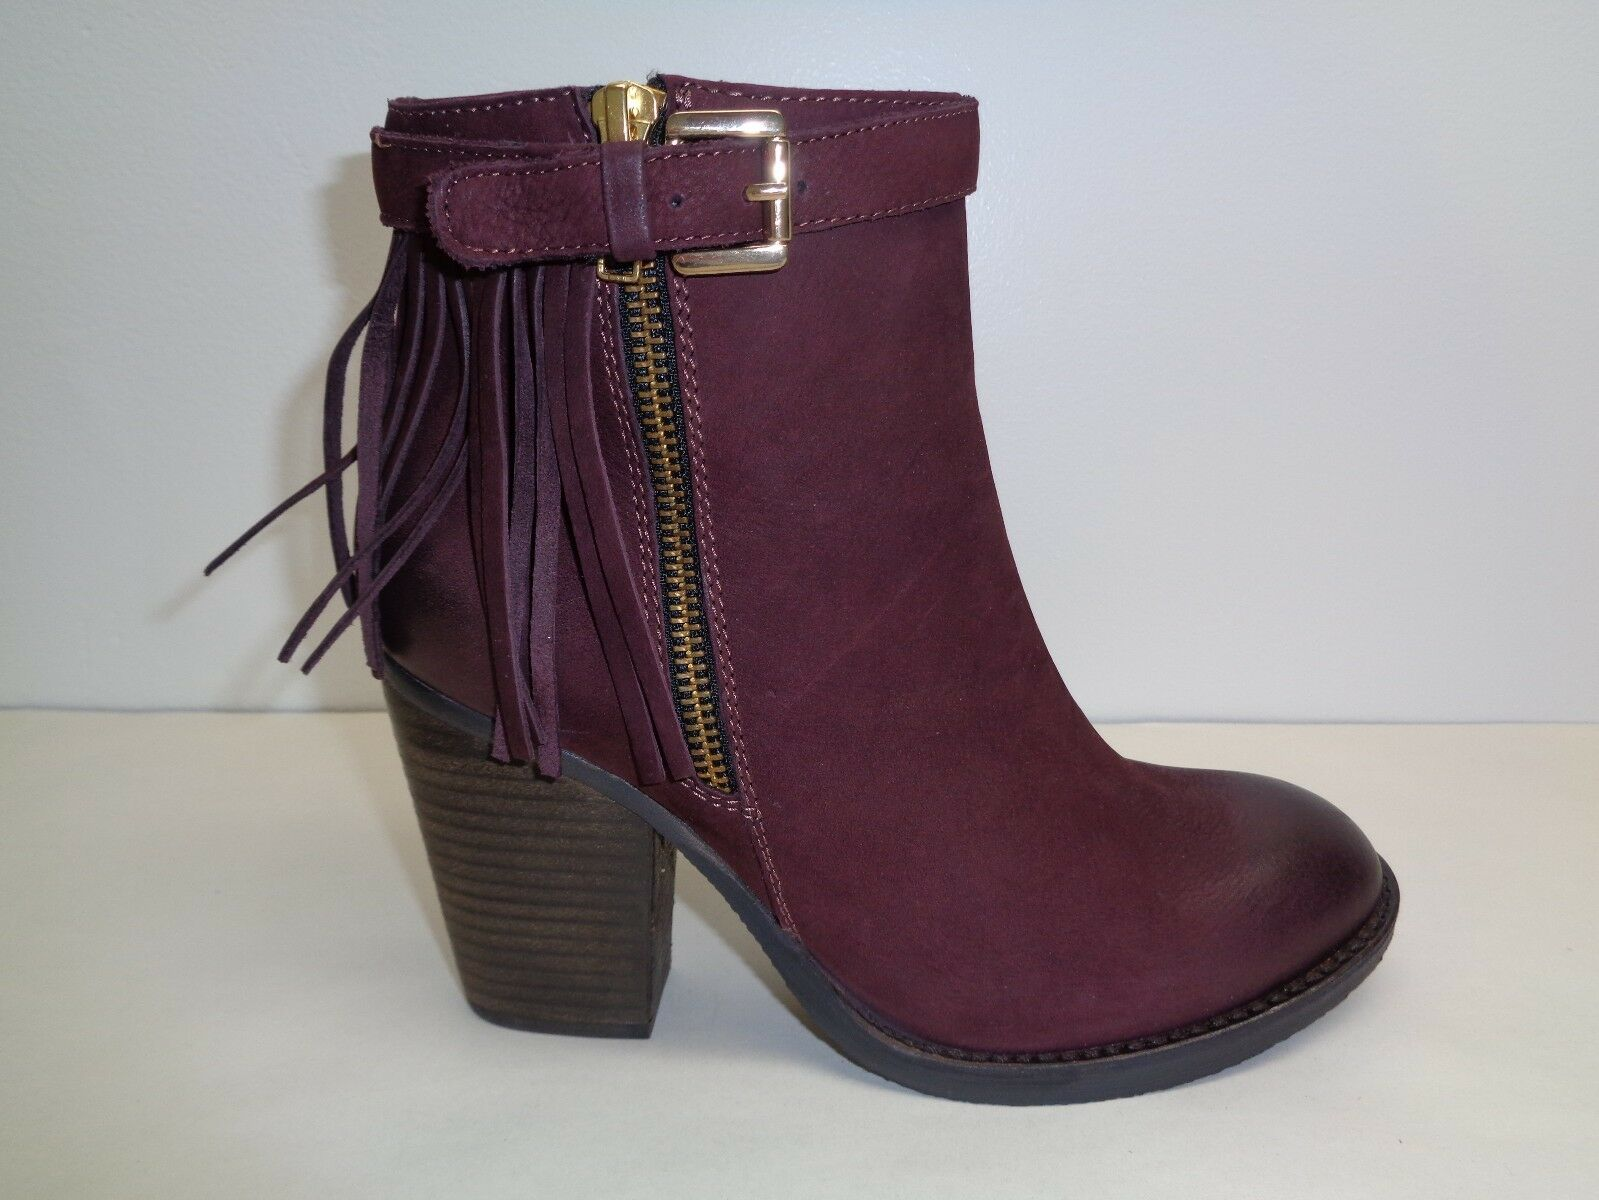 Steve Madden Size 8.5 WOODMEER Burgundy Leather Ankle Boots New Womens Shoes